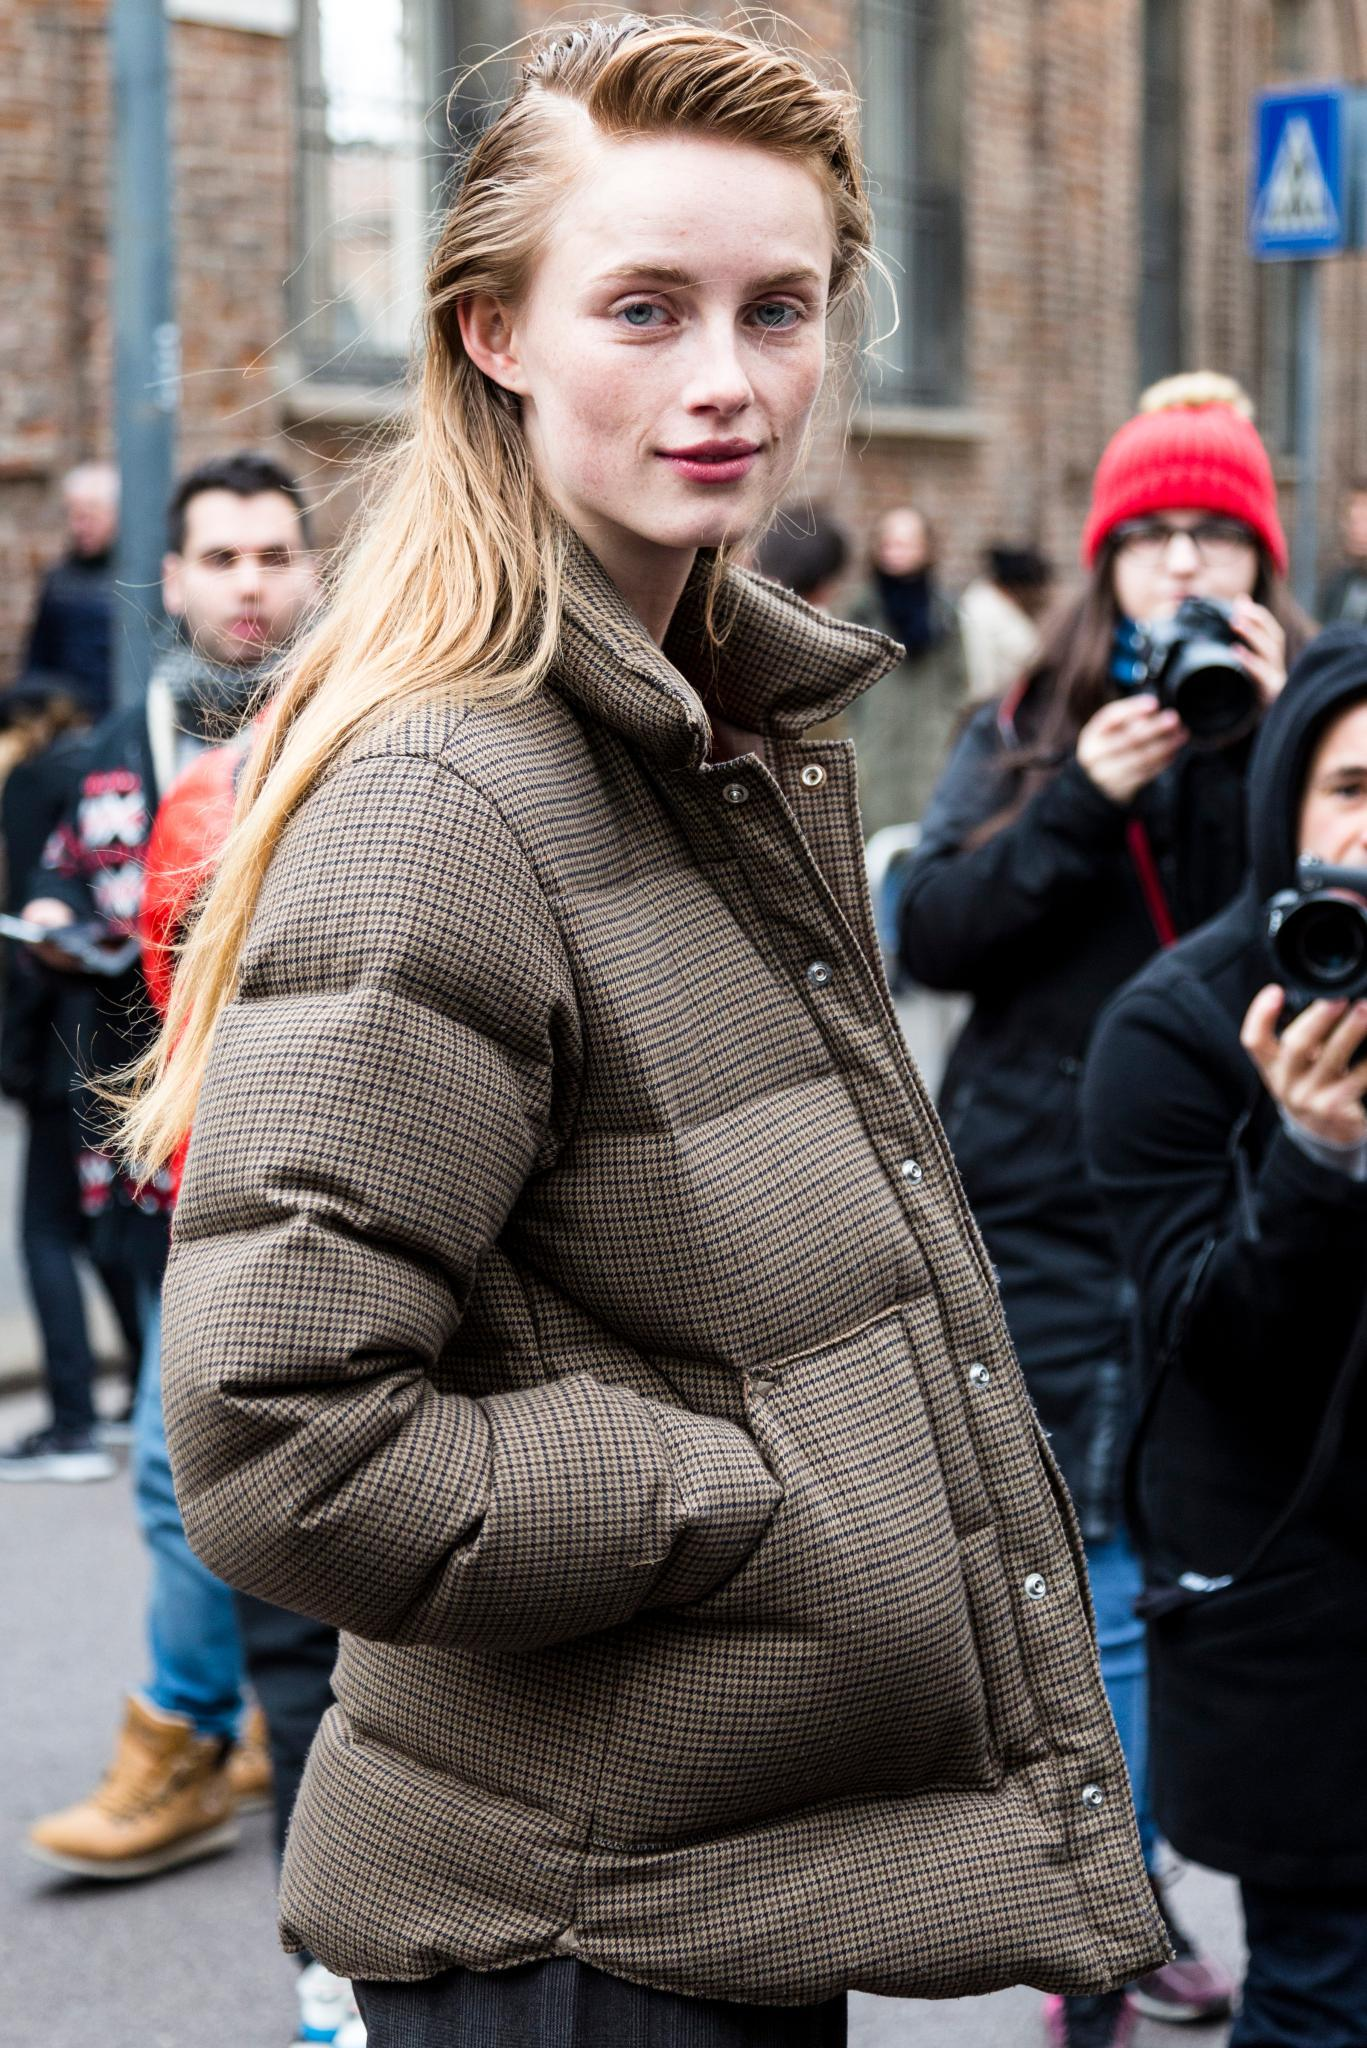 Milan Fashion Week Street Style: Woman with long blonde hair in side parting with soft quiff wearing a puffa jacket.